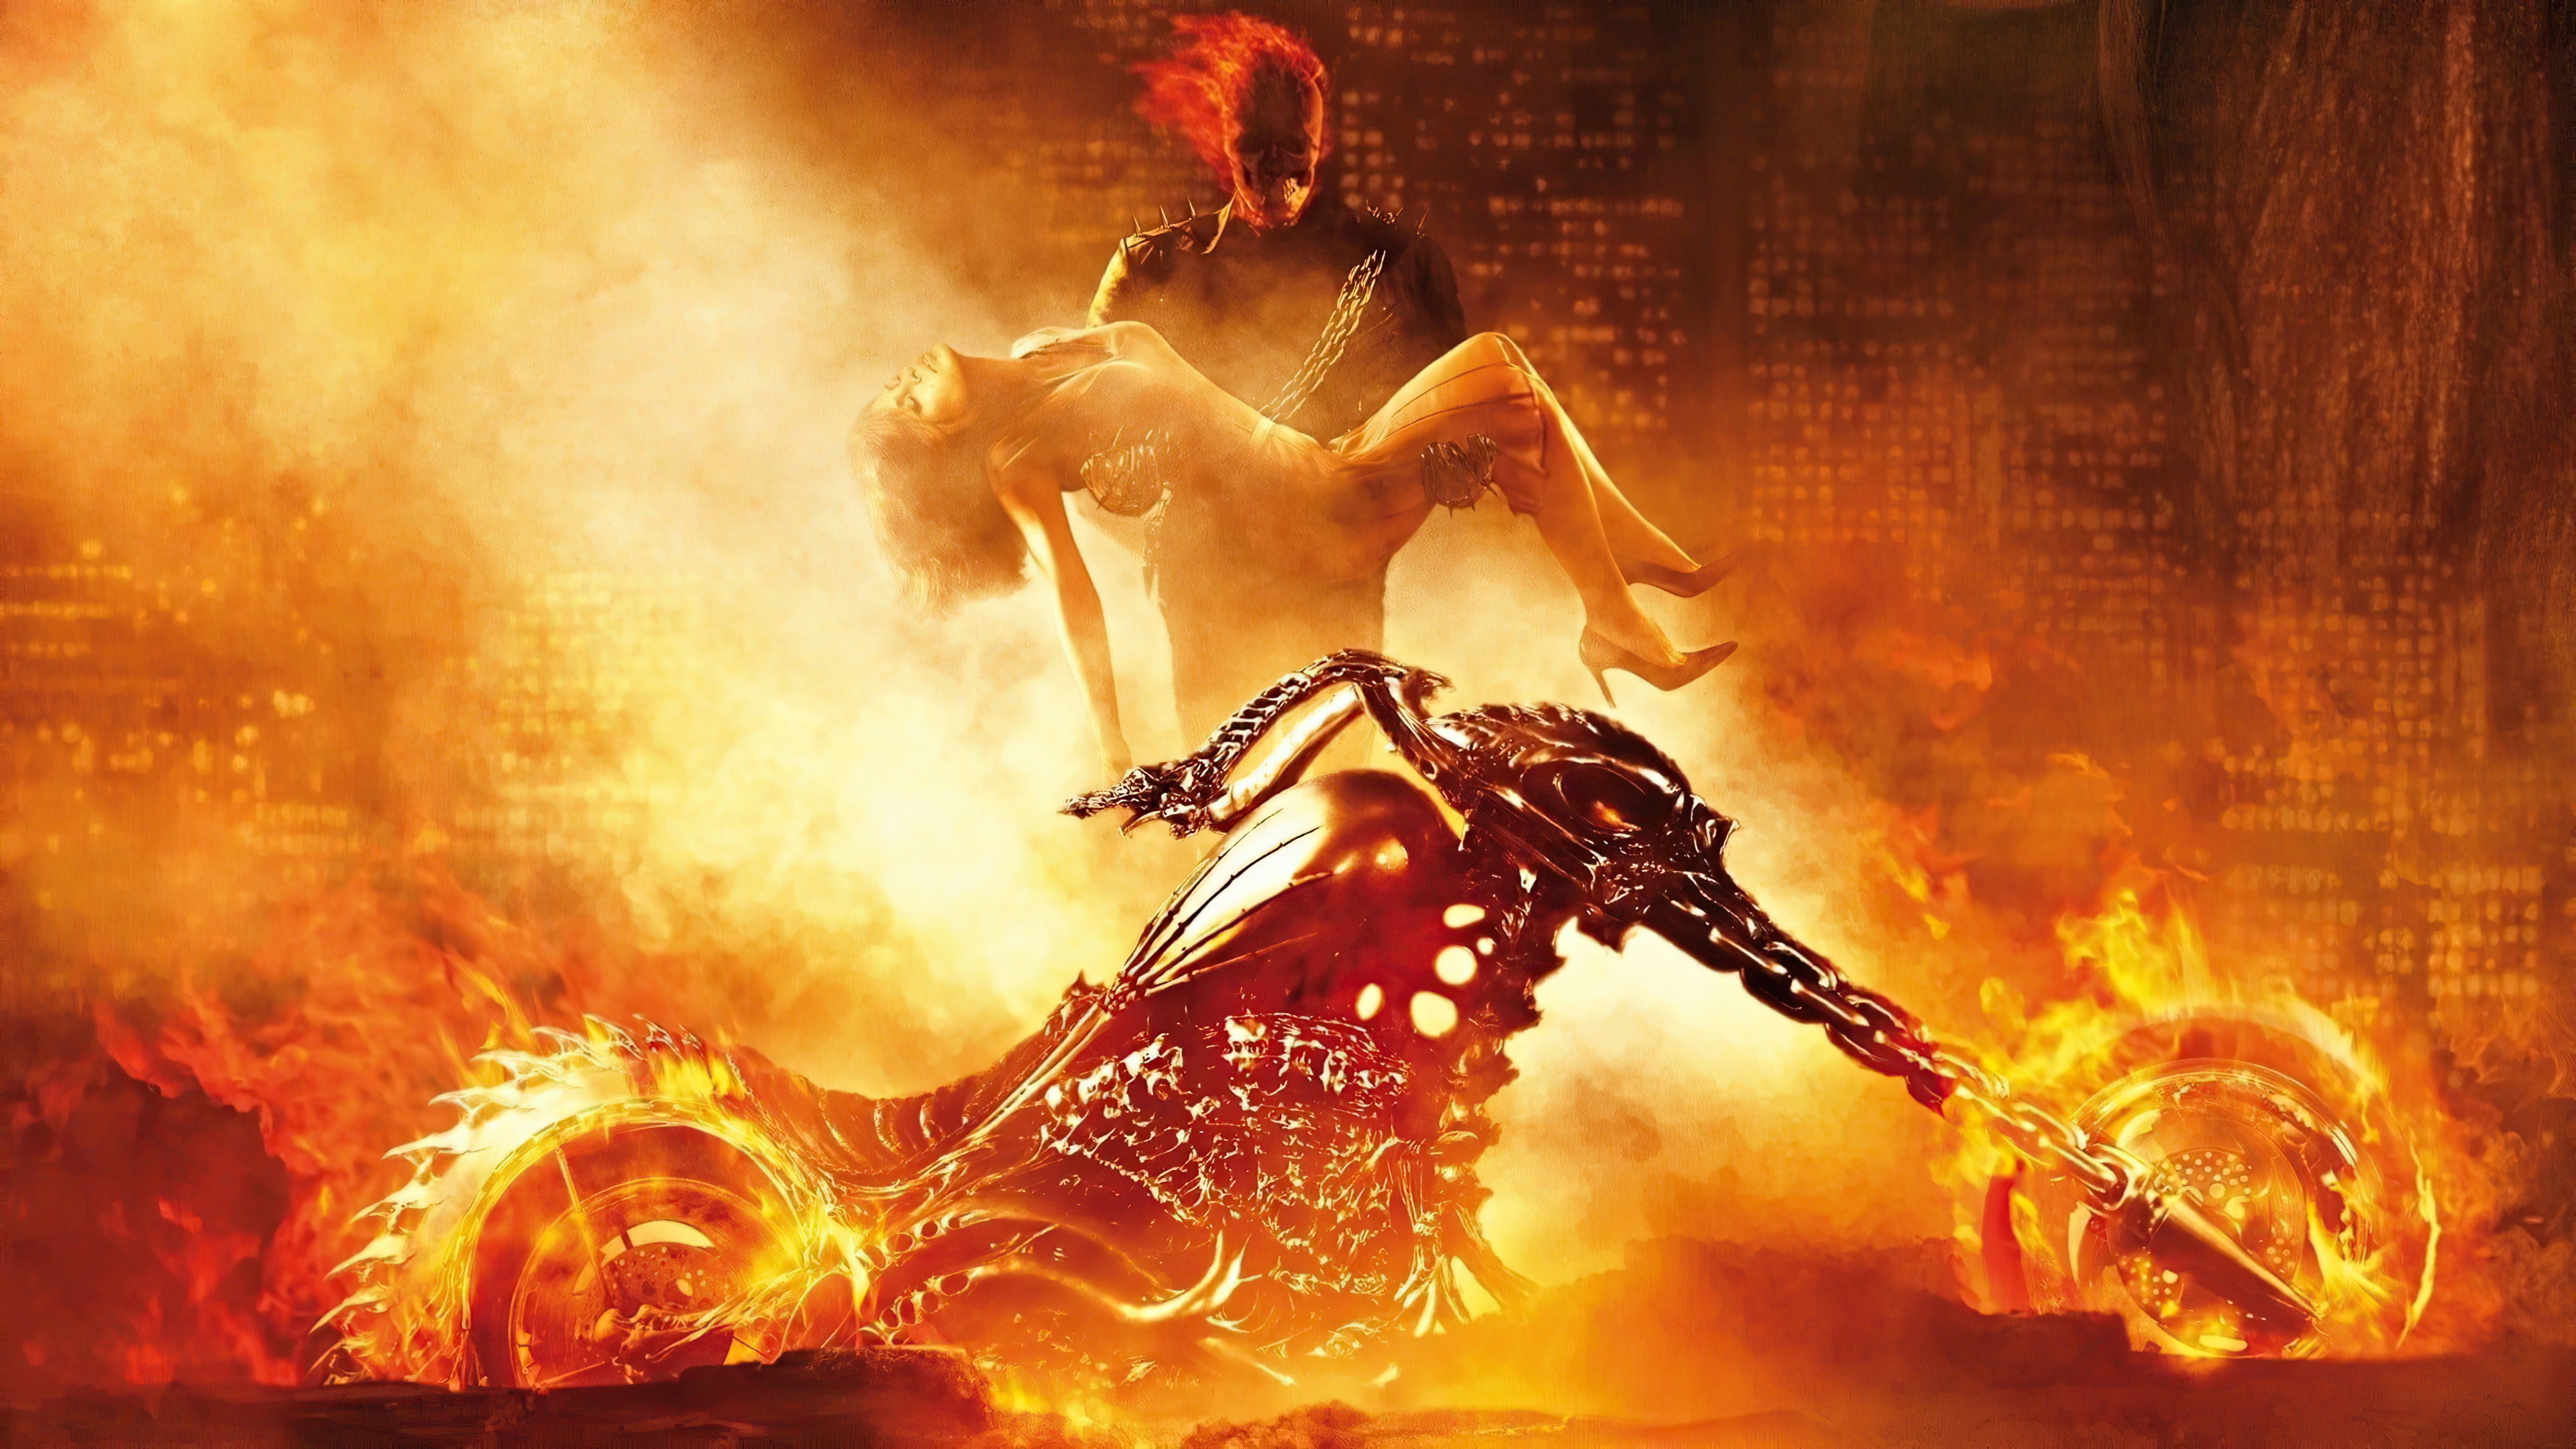 ghost rider is stealing